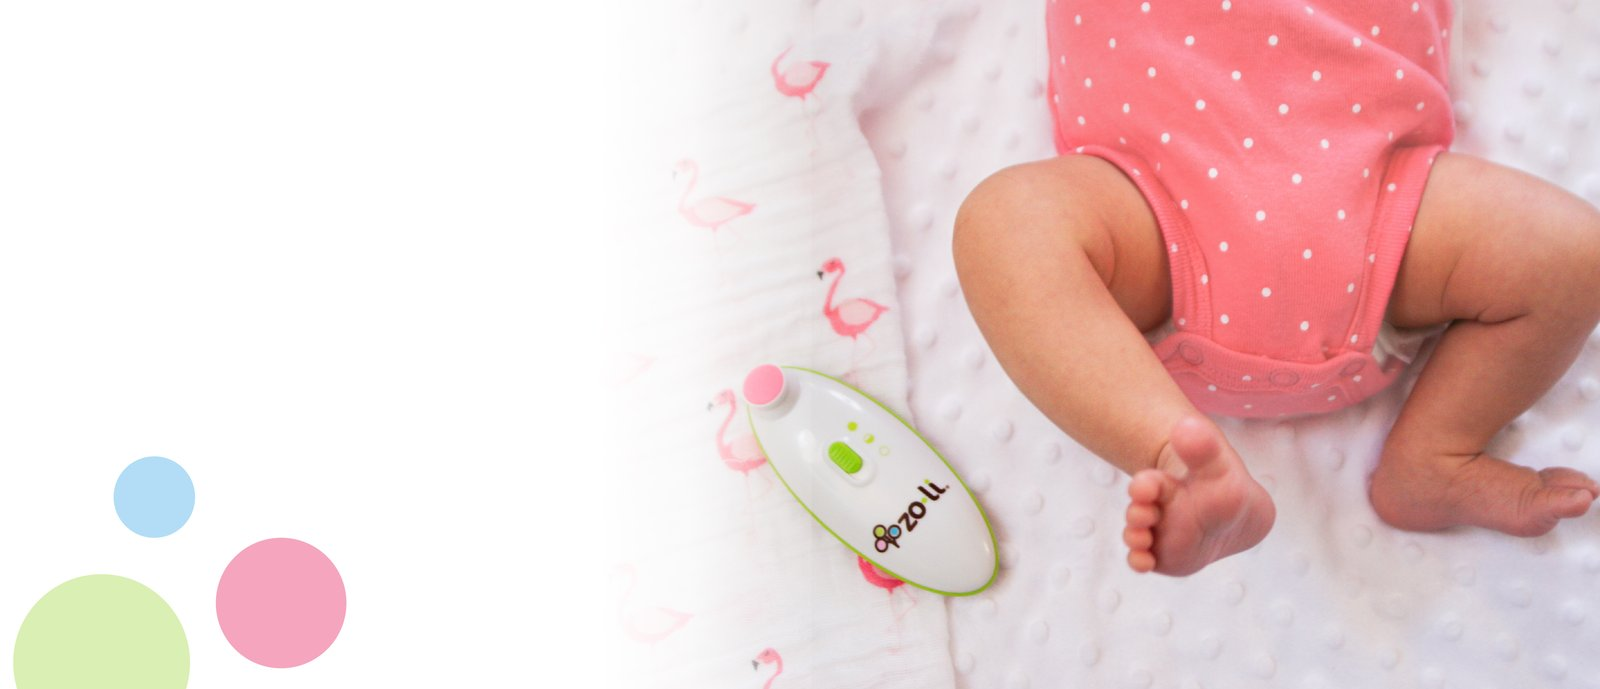 BUZZ B electric baby nail filer